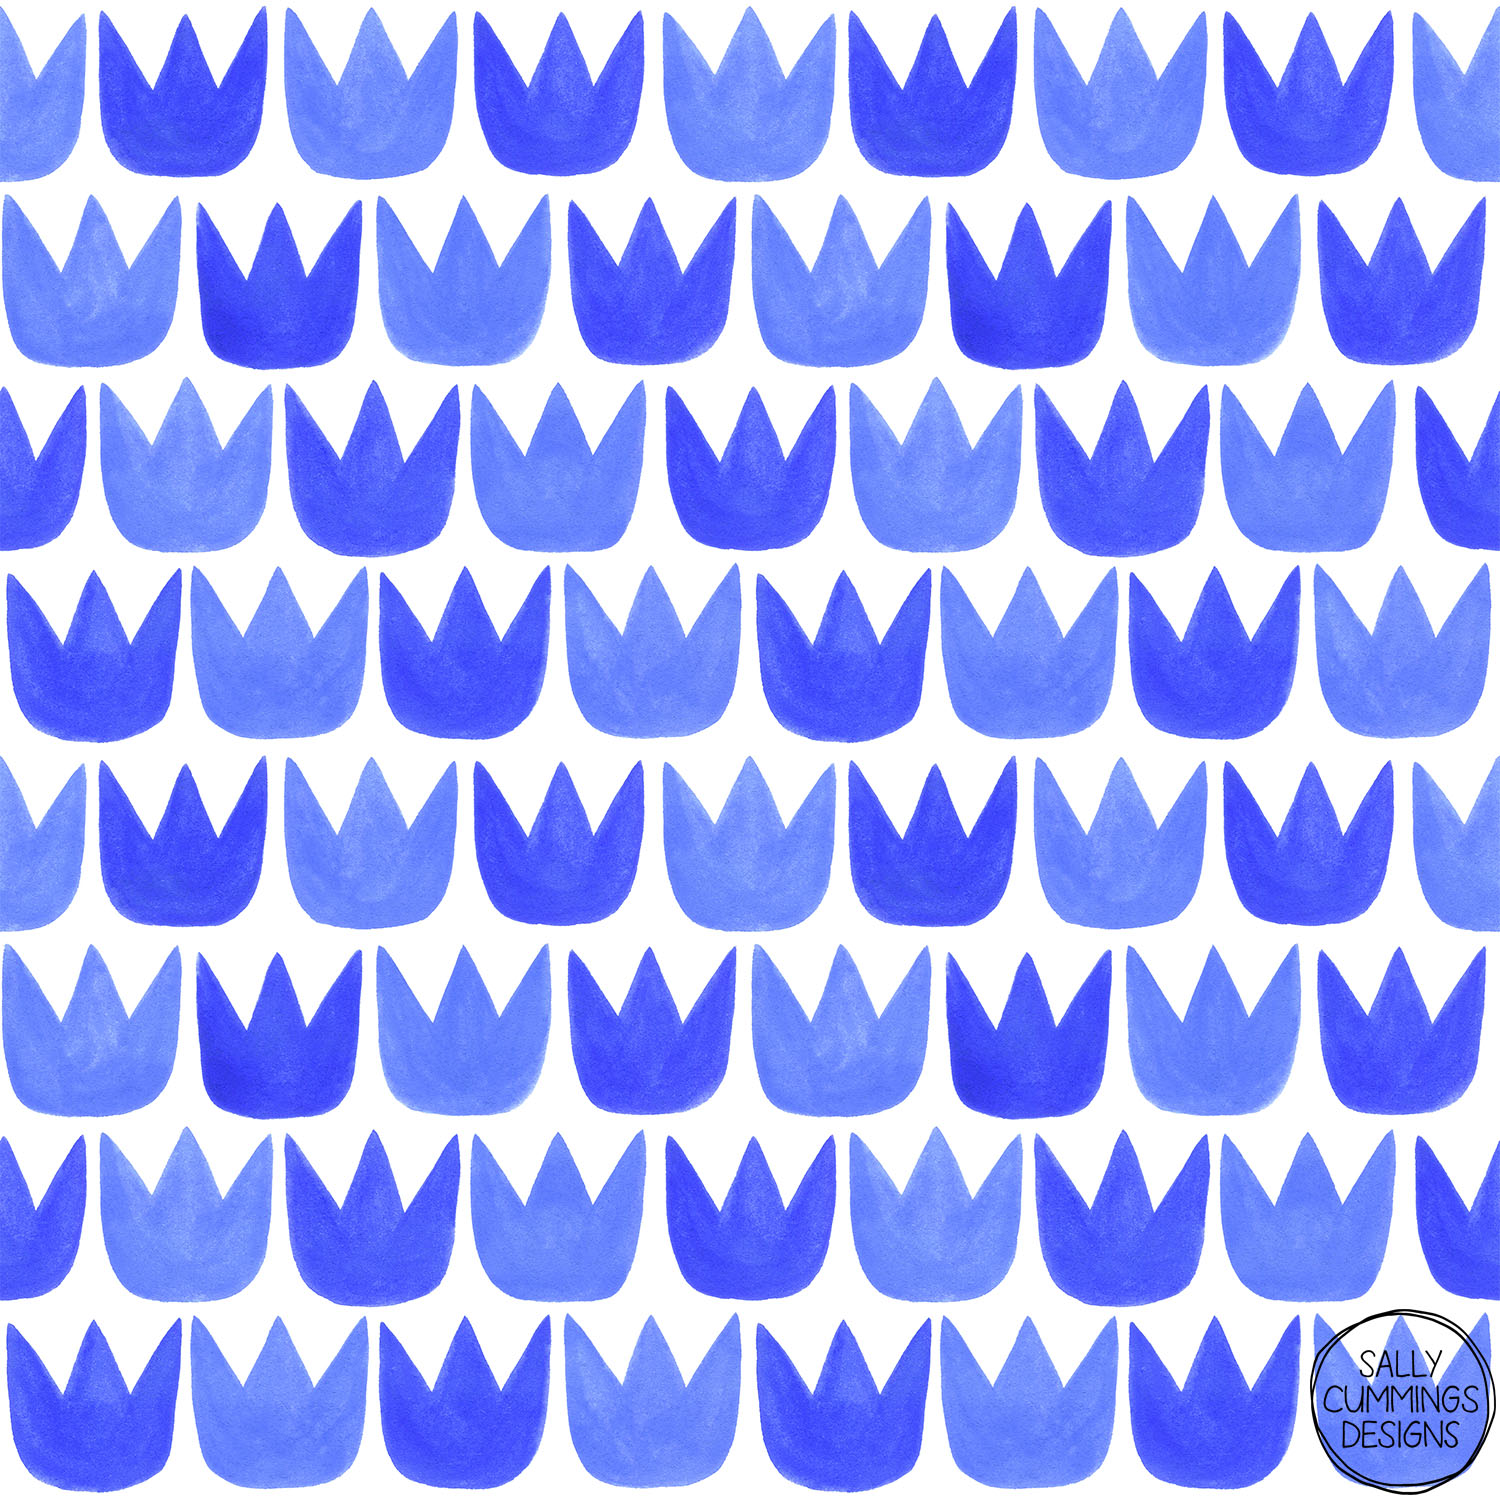 Sally Cummings Designs - Tiptoe Tulips Blue Pattern